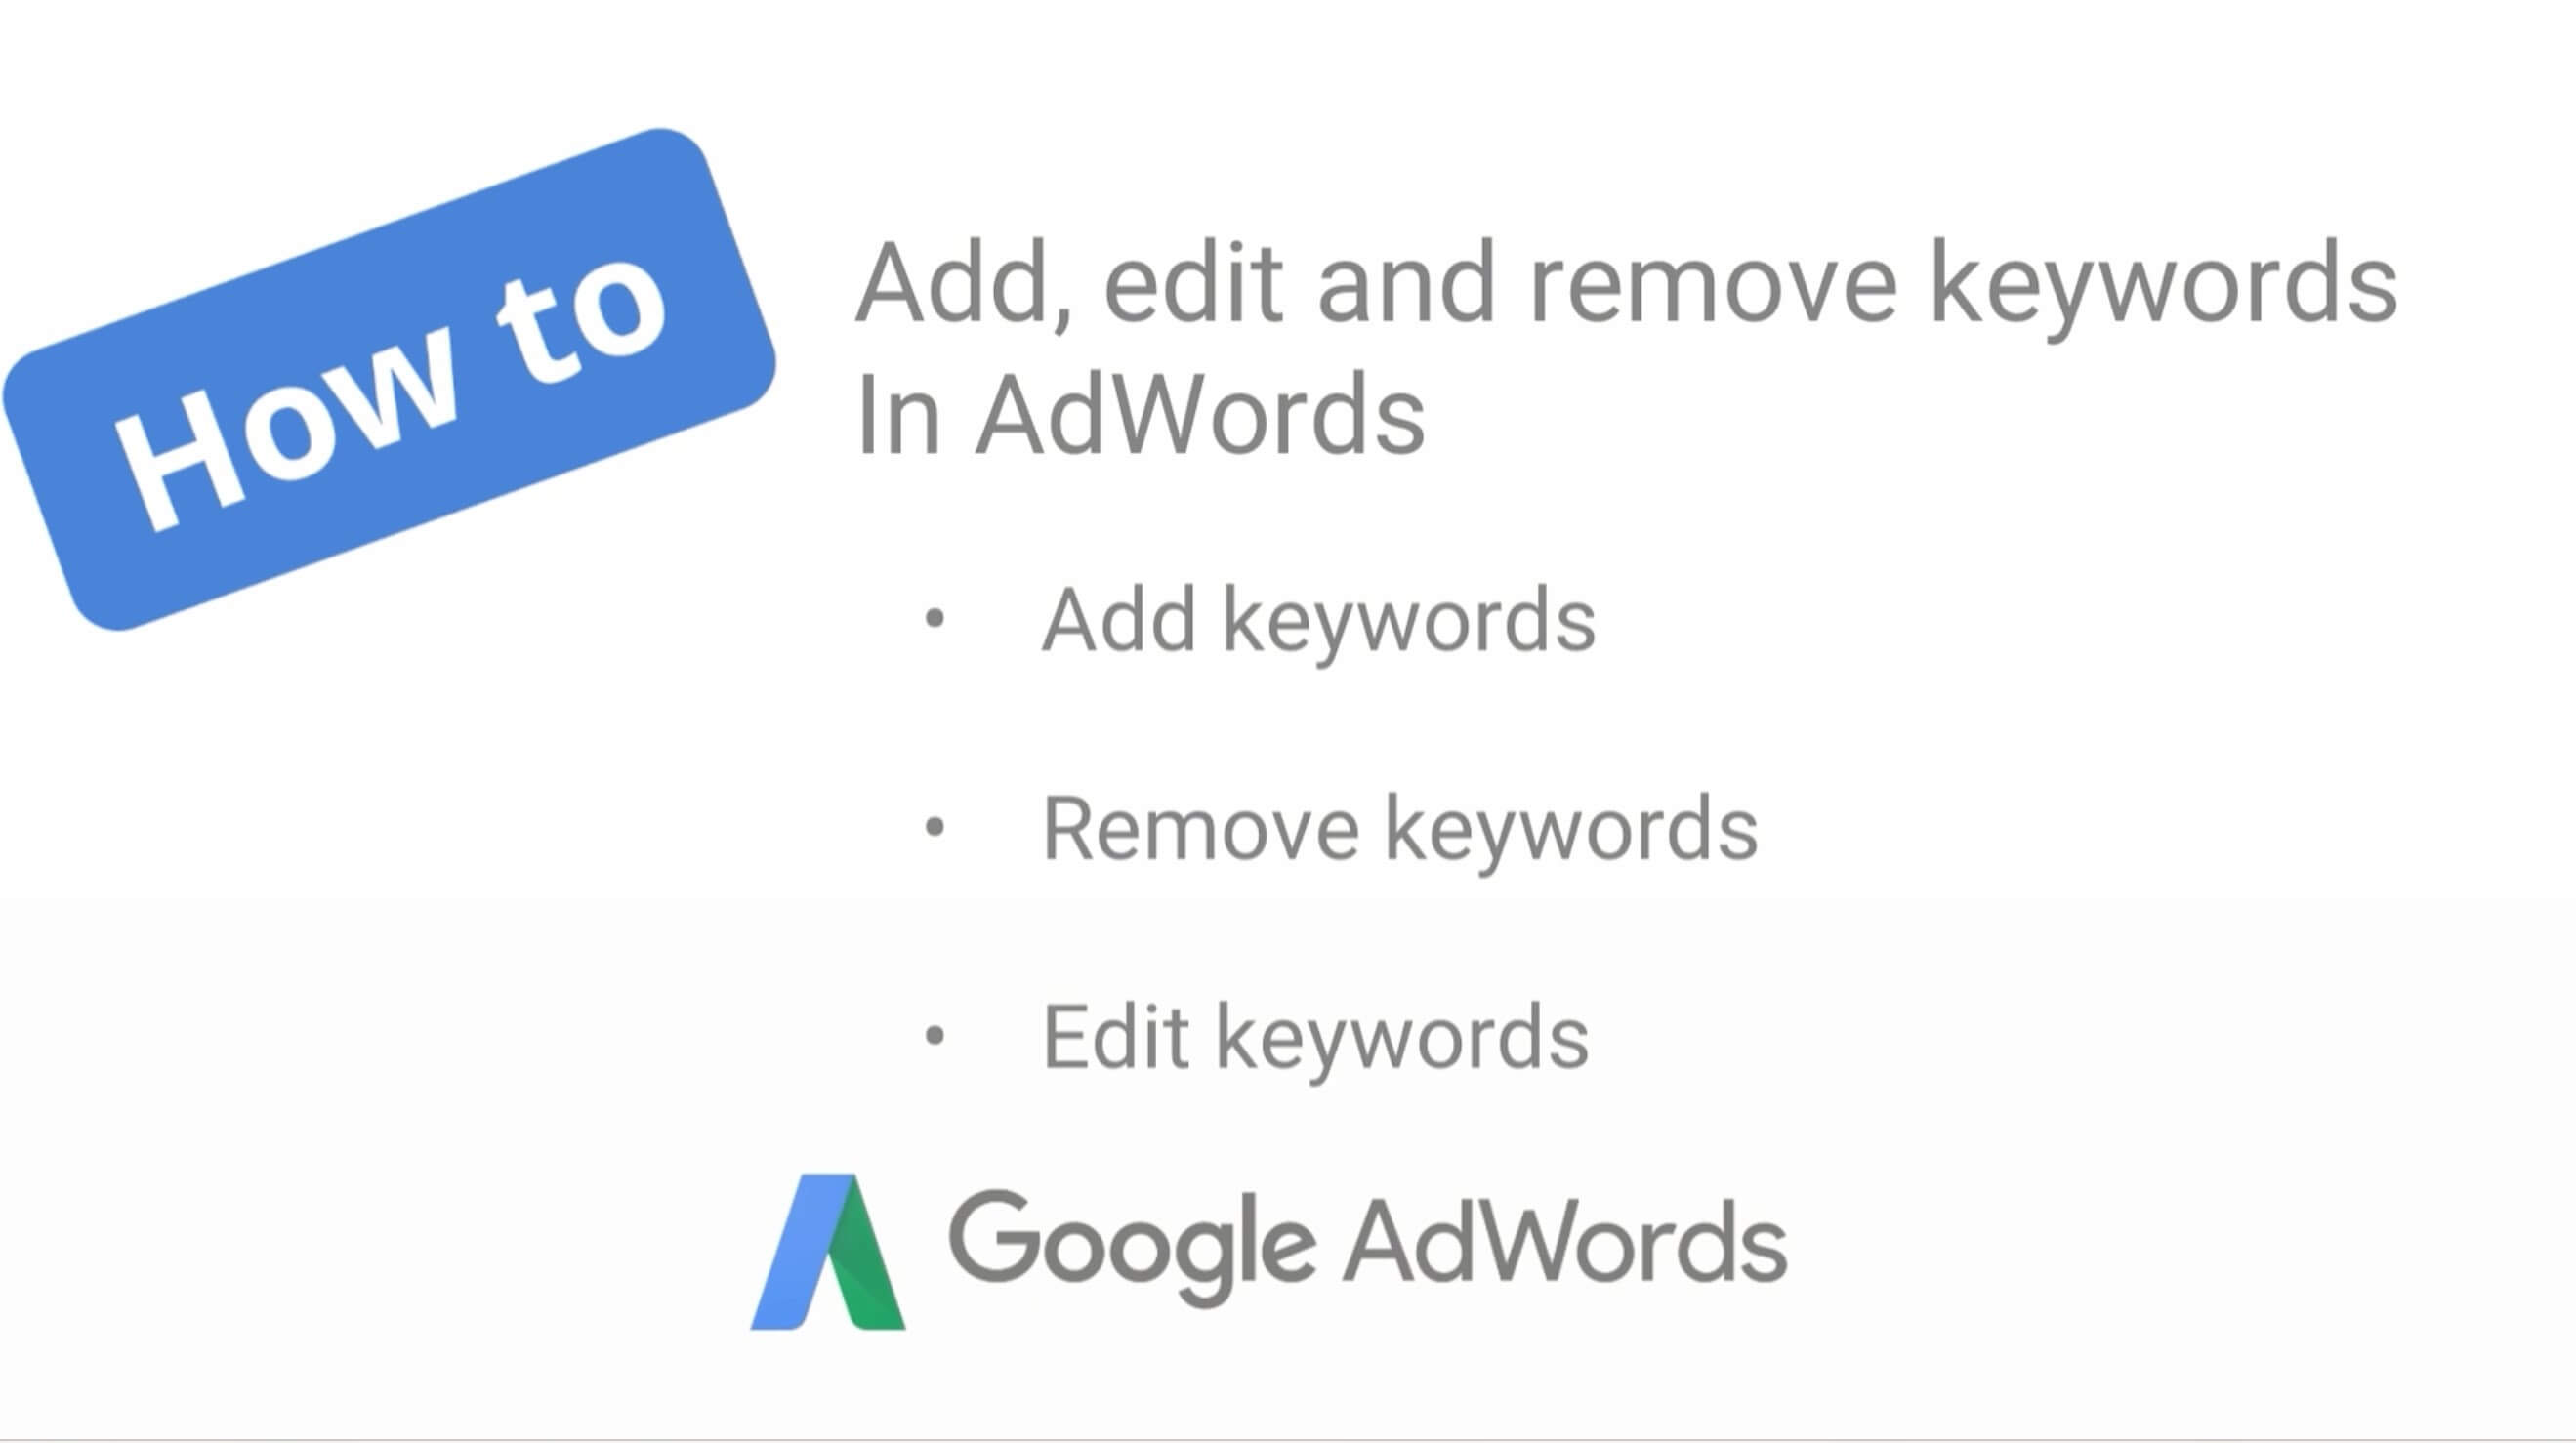 How to add, edit, and remove keywords in AdWords